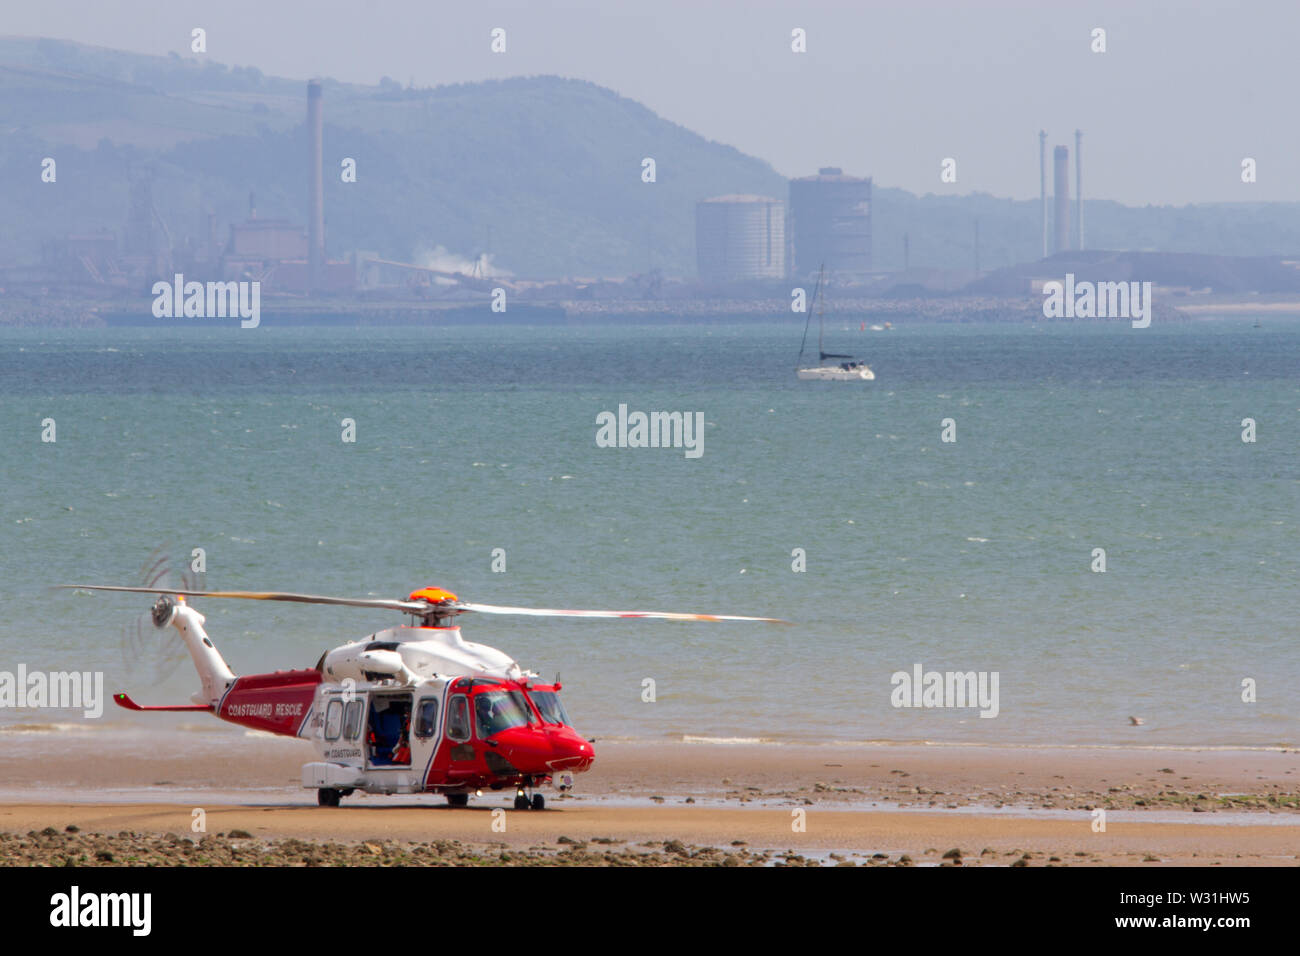 Red And White Helicopter Stock Photos & Red And White